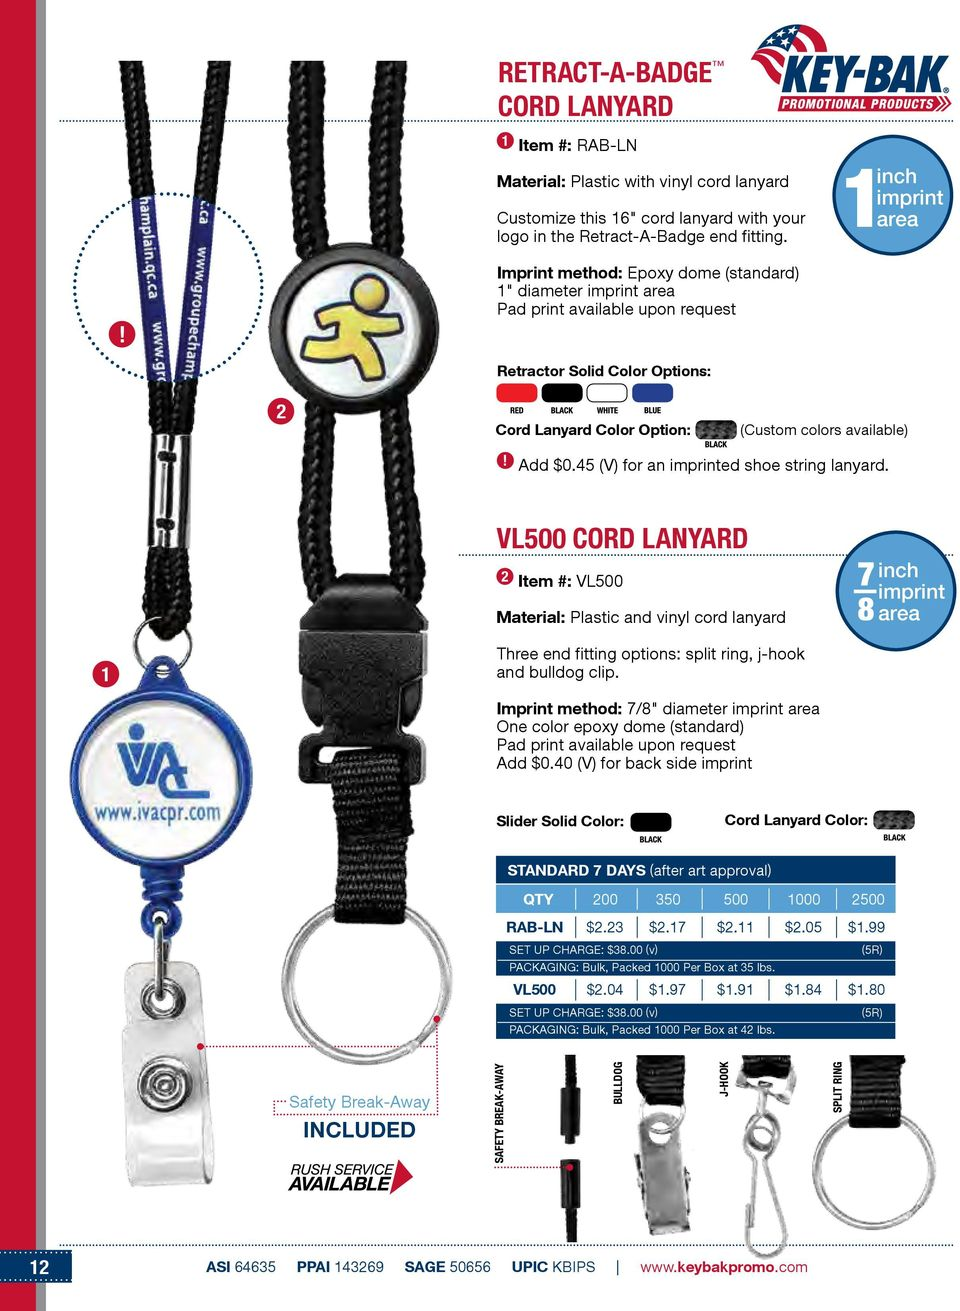 45 (V) for an imprinted shoe string lanyard. VL500 CORD LANYARD 2 Item #: VL500 Material: Plastic and vinyl cord lanyard imprint area 1 Three end fitting options: split ring, j-hook and bulldog clip.